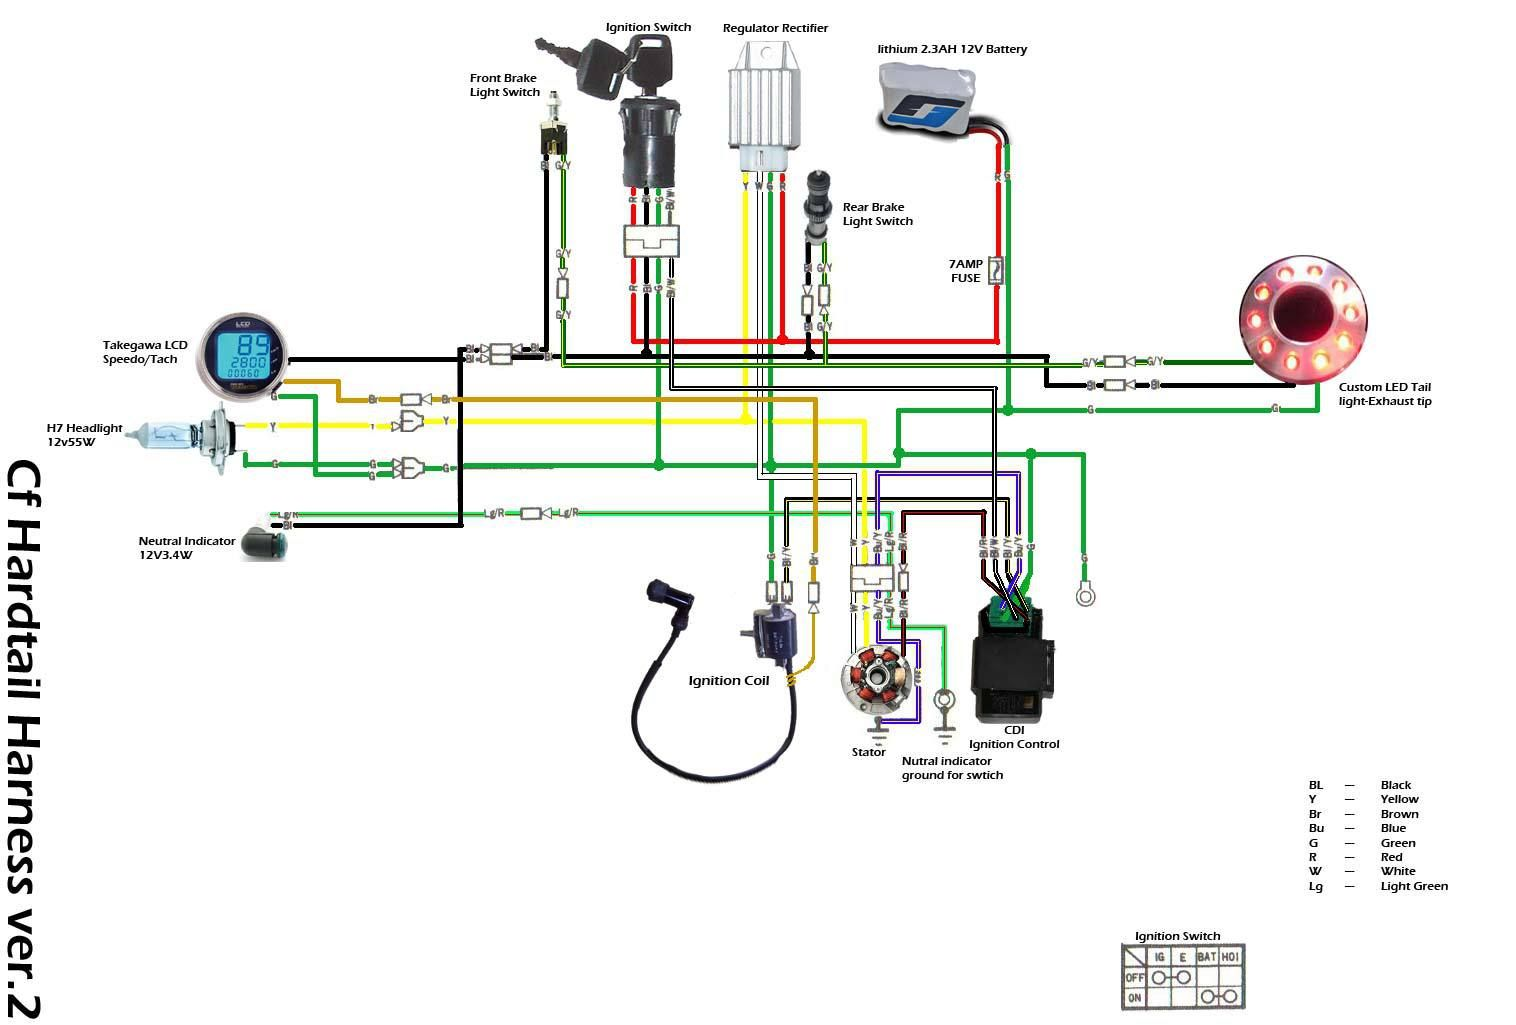 110cc basic wiring setup atvconnection com atv enthusiast community within 110cc  chinese atv diagram in 2020 | motorcycle wiring, pit bike, bike engine  pinterest